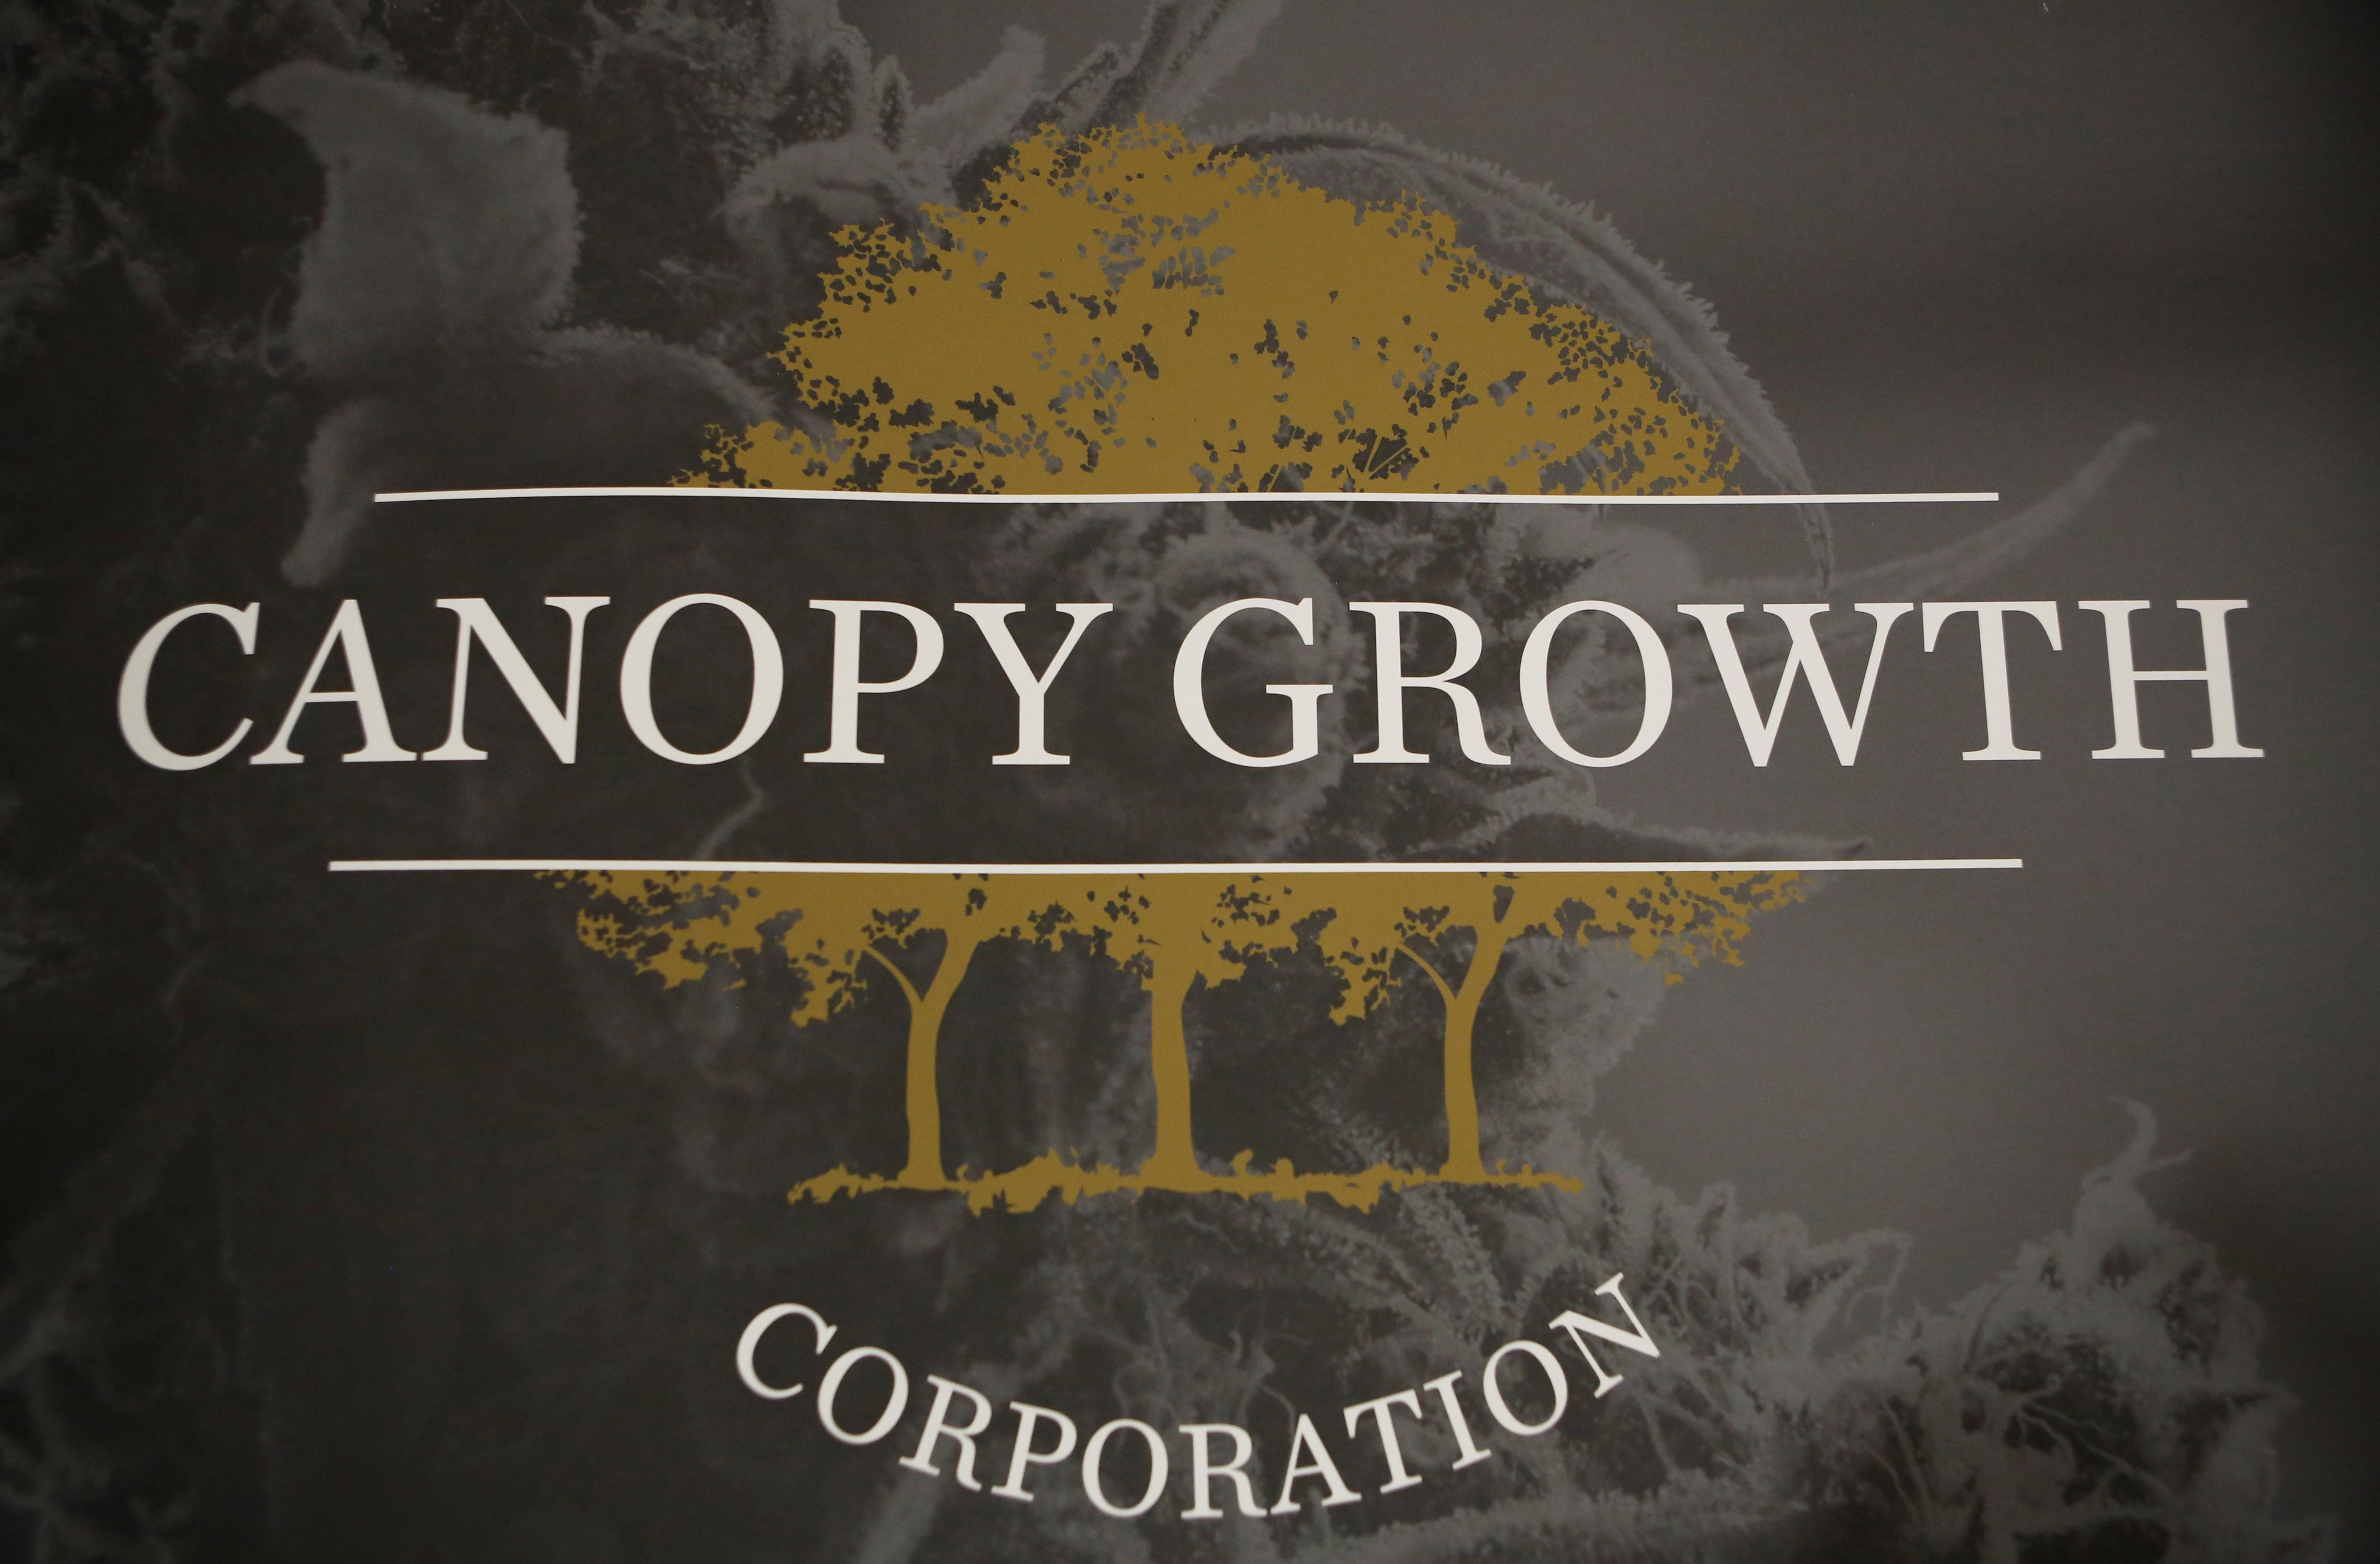 Canopy Growth needs another 3-5 years to turn profit